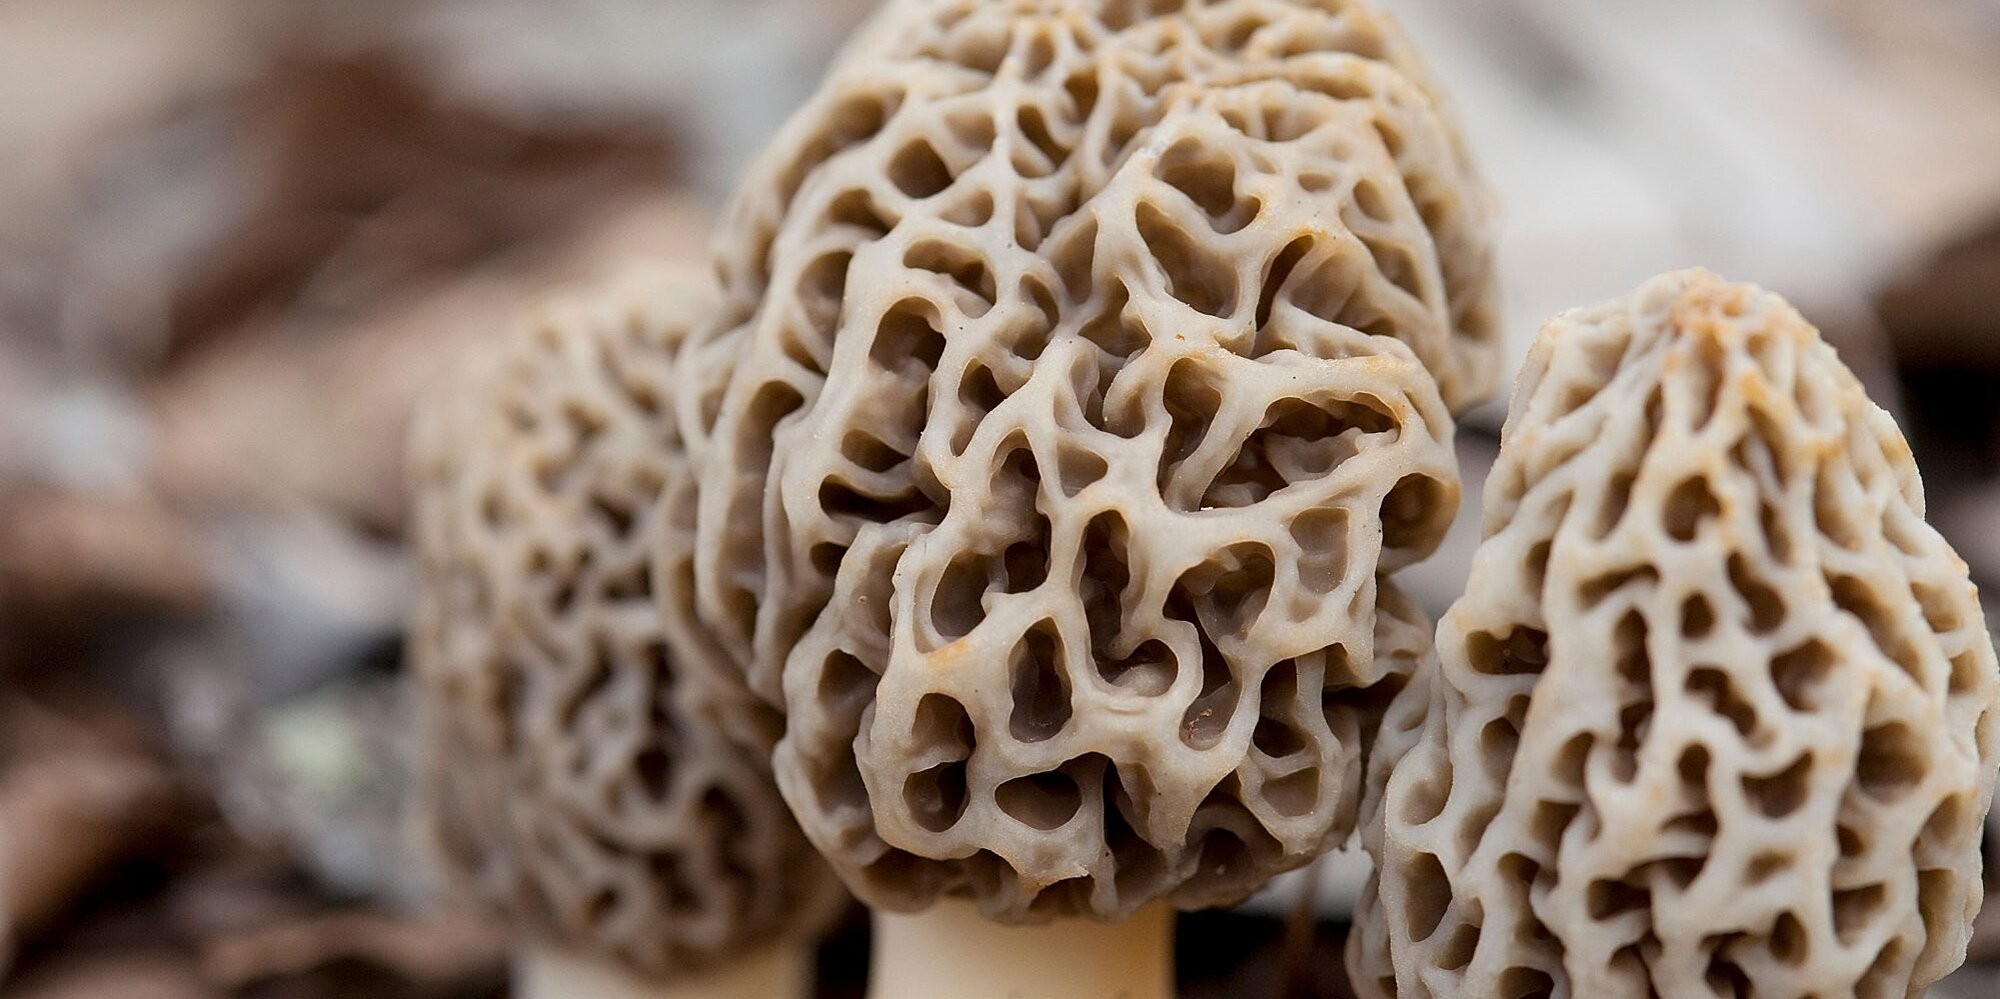 What Are Morel Mushrooms and How Do You Cook With Them?